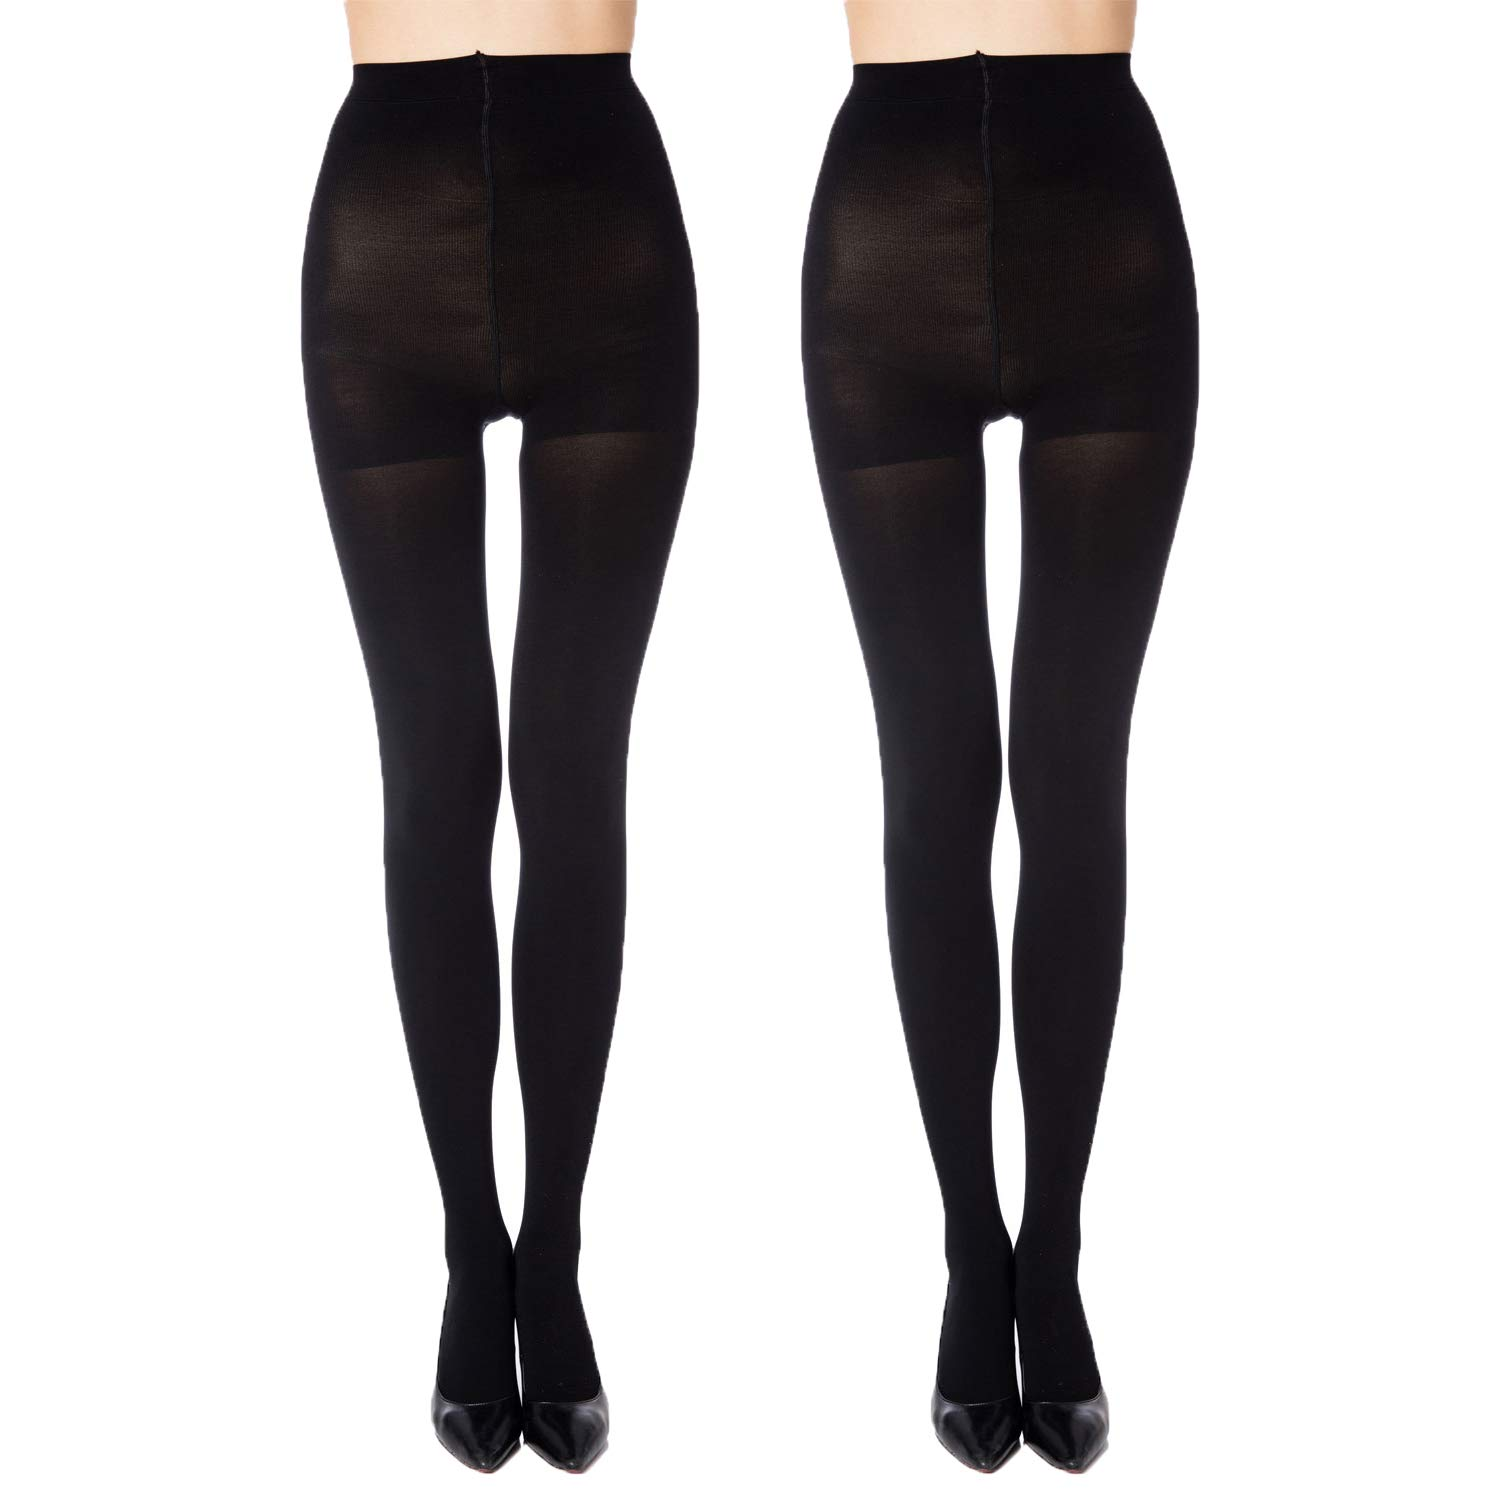 3ea1b78c36e MANZI 2 Pairs Run Resistant Control Top Panty Hose Opaque Tights at Amazon  Women s Clothing store